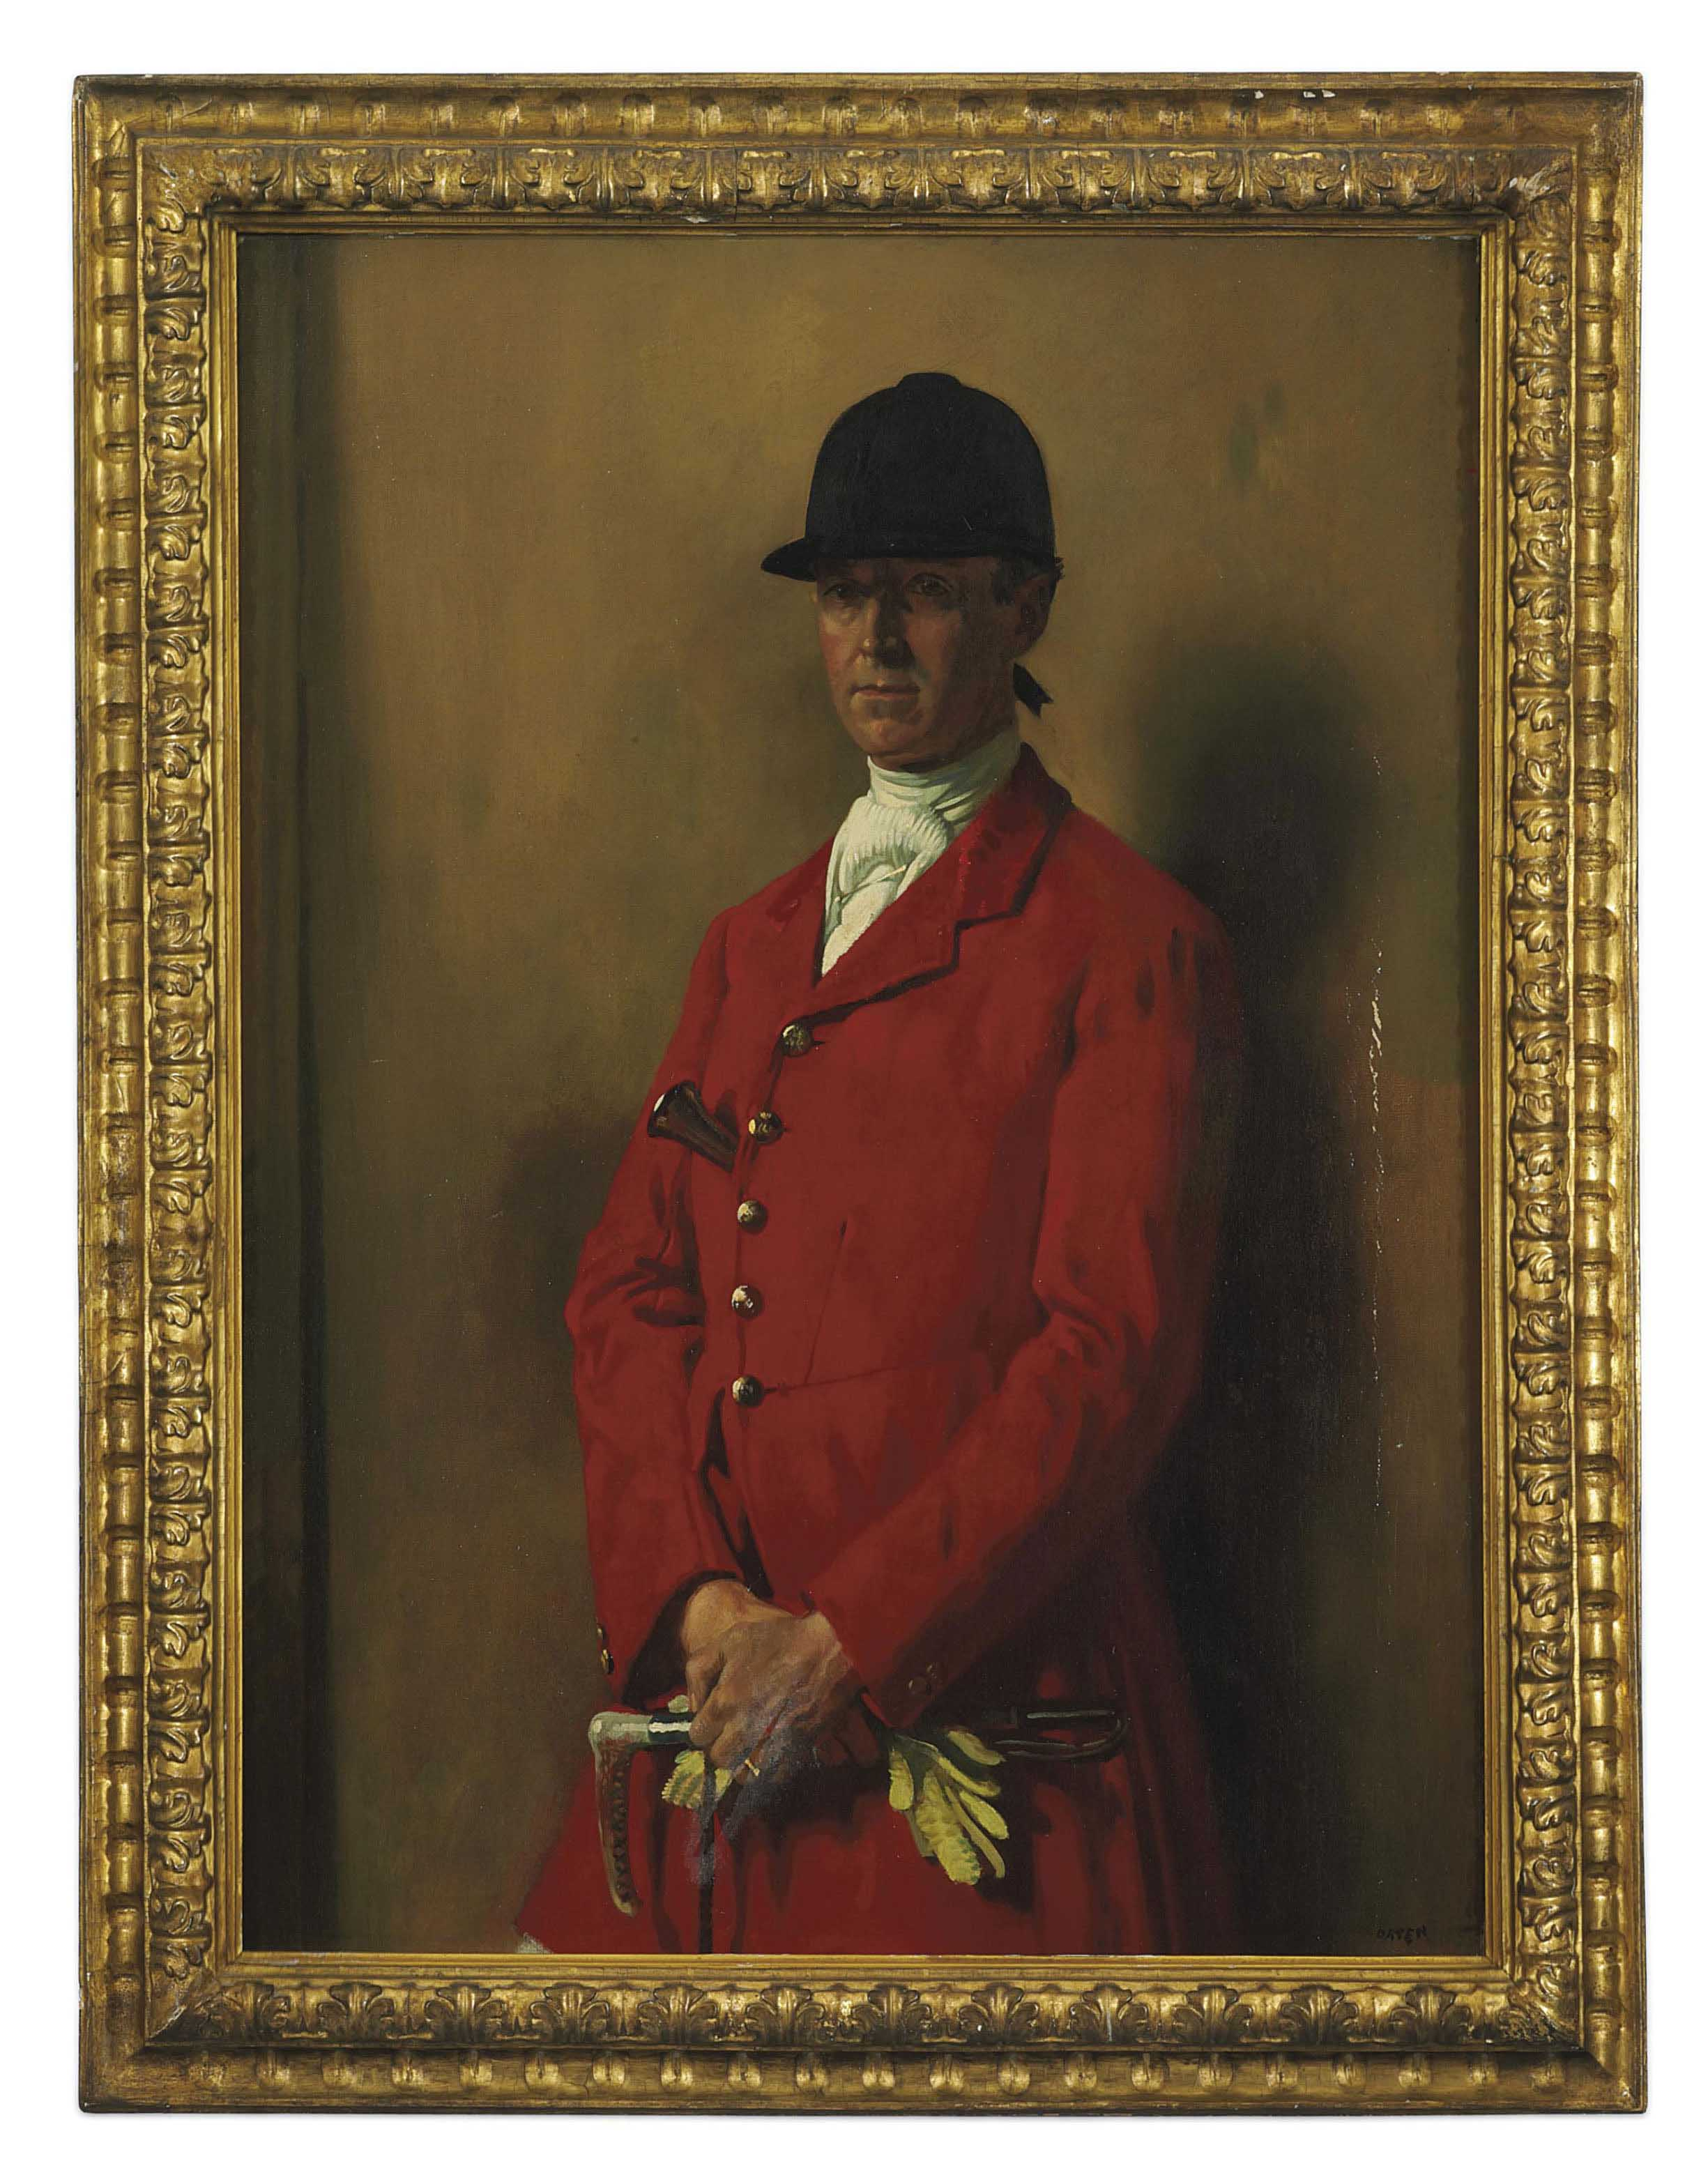 Portrait of Captain Marshall Roberts, Master of the South Notts Foxhounds